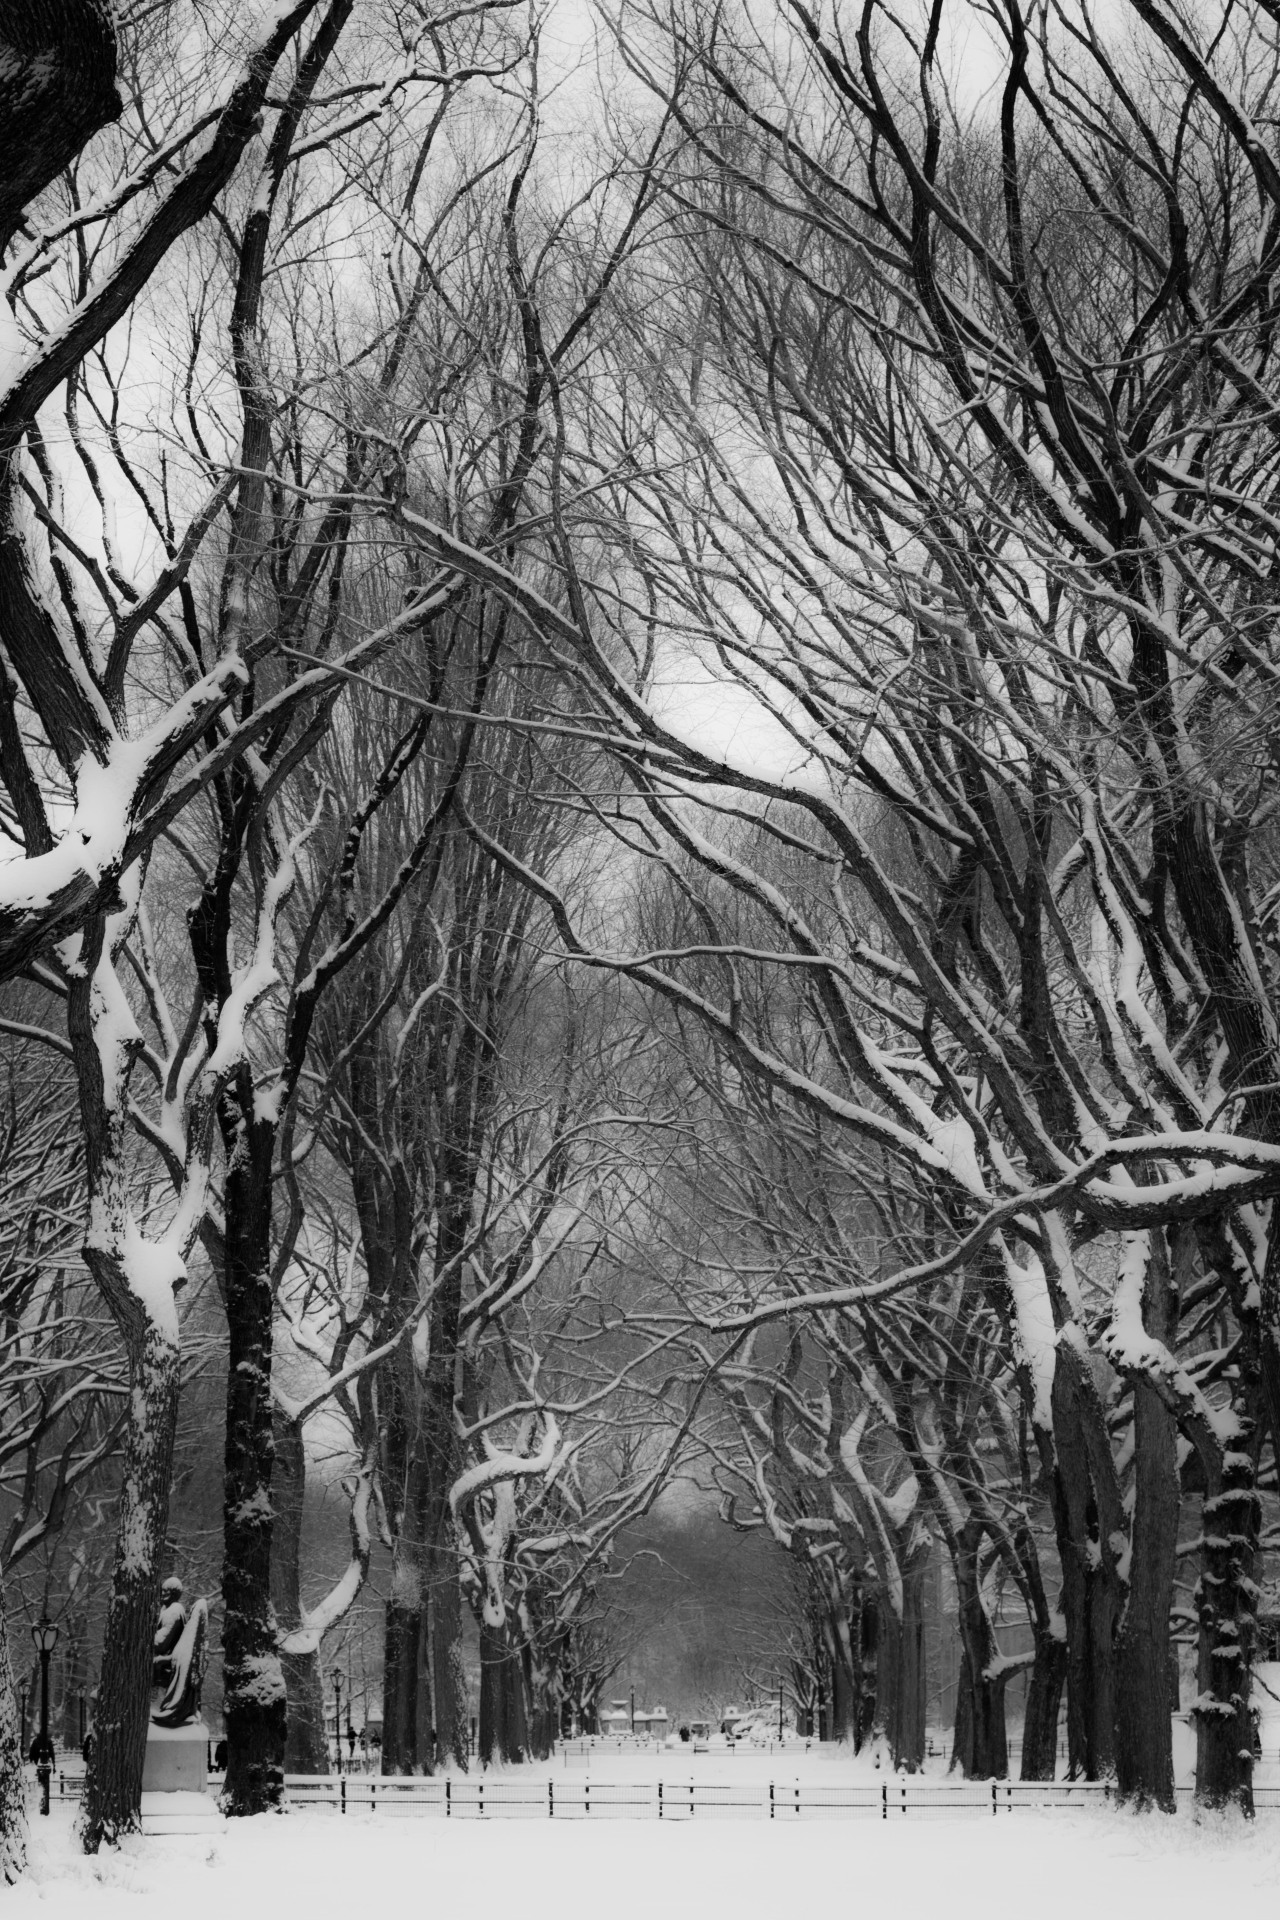 lensblr-network:  Winter Scene #5: Near Poet's Walk, Central Park.On either side of Poet's Walk there are stands of trees (American Elms?) that form vaulting, interlocking branches. This is the east side stand. #2 is the west side stand. Poet's Walk itself exhibits the same effect and is often photographed but I think these two stands are finer.  by Ric Camacho  (riccamacho.com)